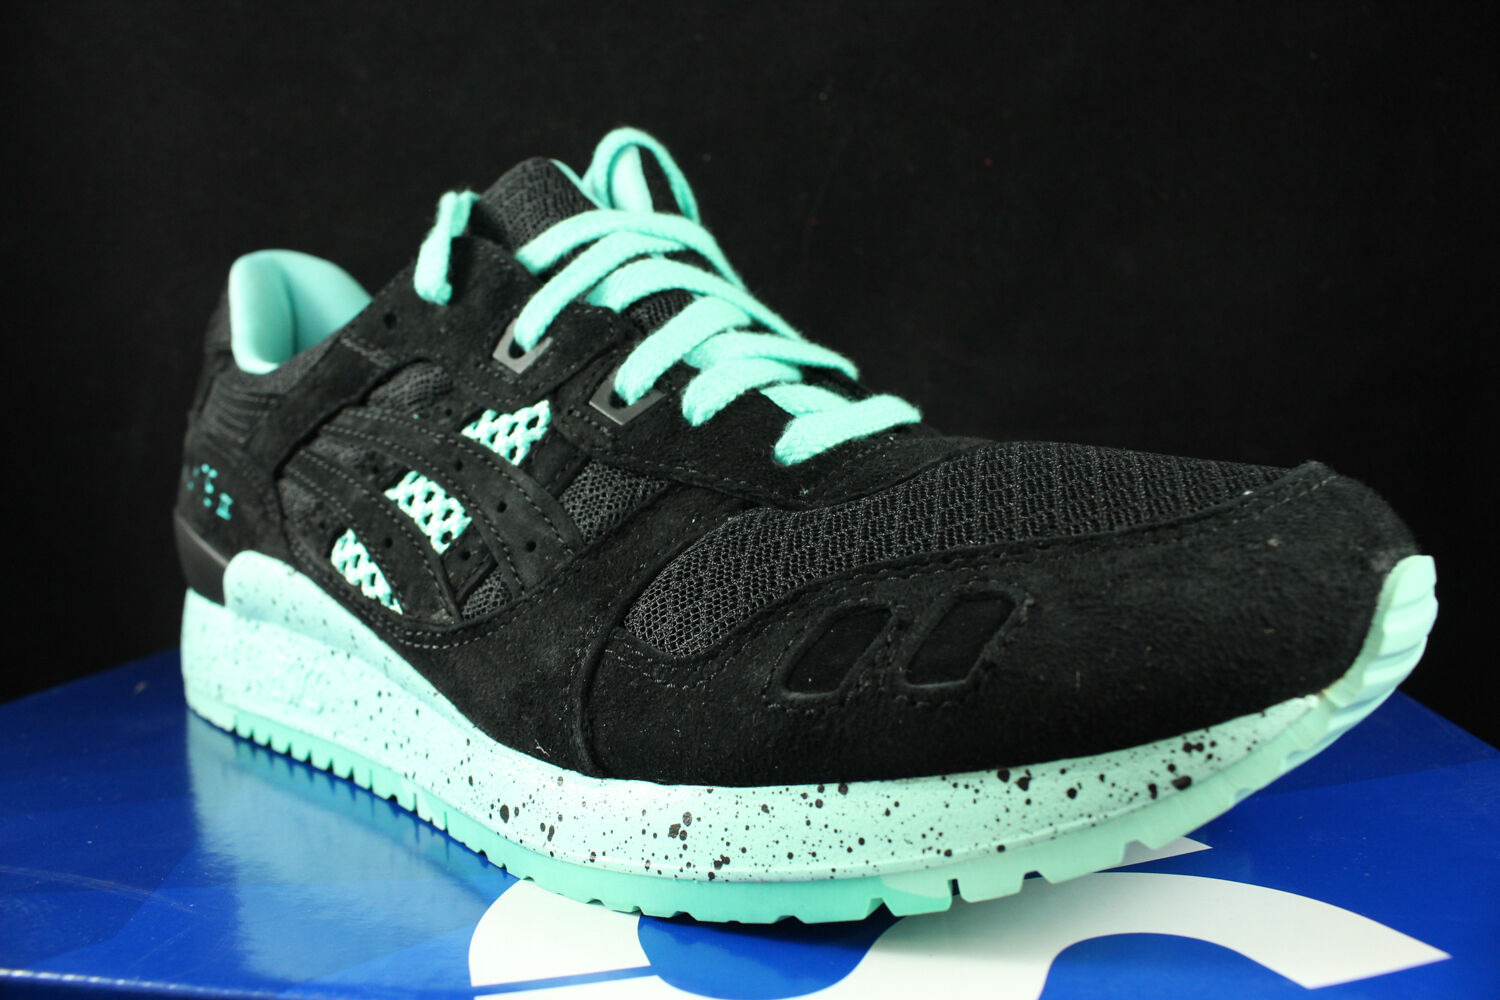 ASICS GEL LYTE III 3 H6Z0L BRIGHT PACK BLACK MINT H6Z0L 3 9090 SZ 10 0c1f40